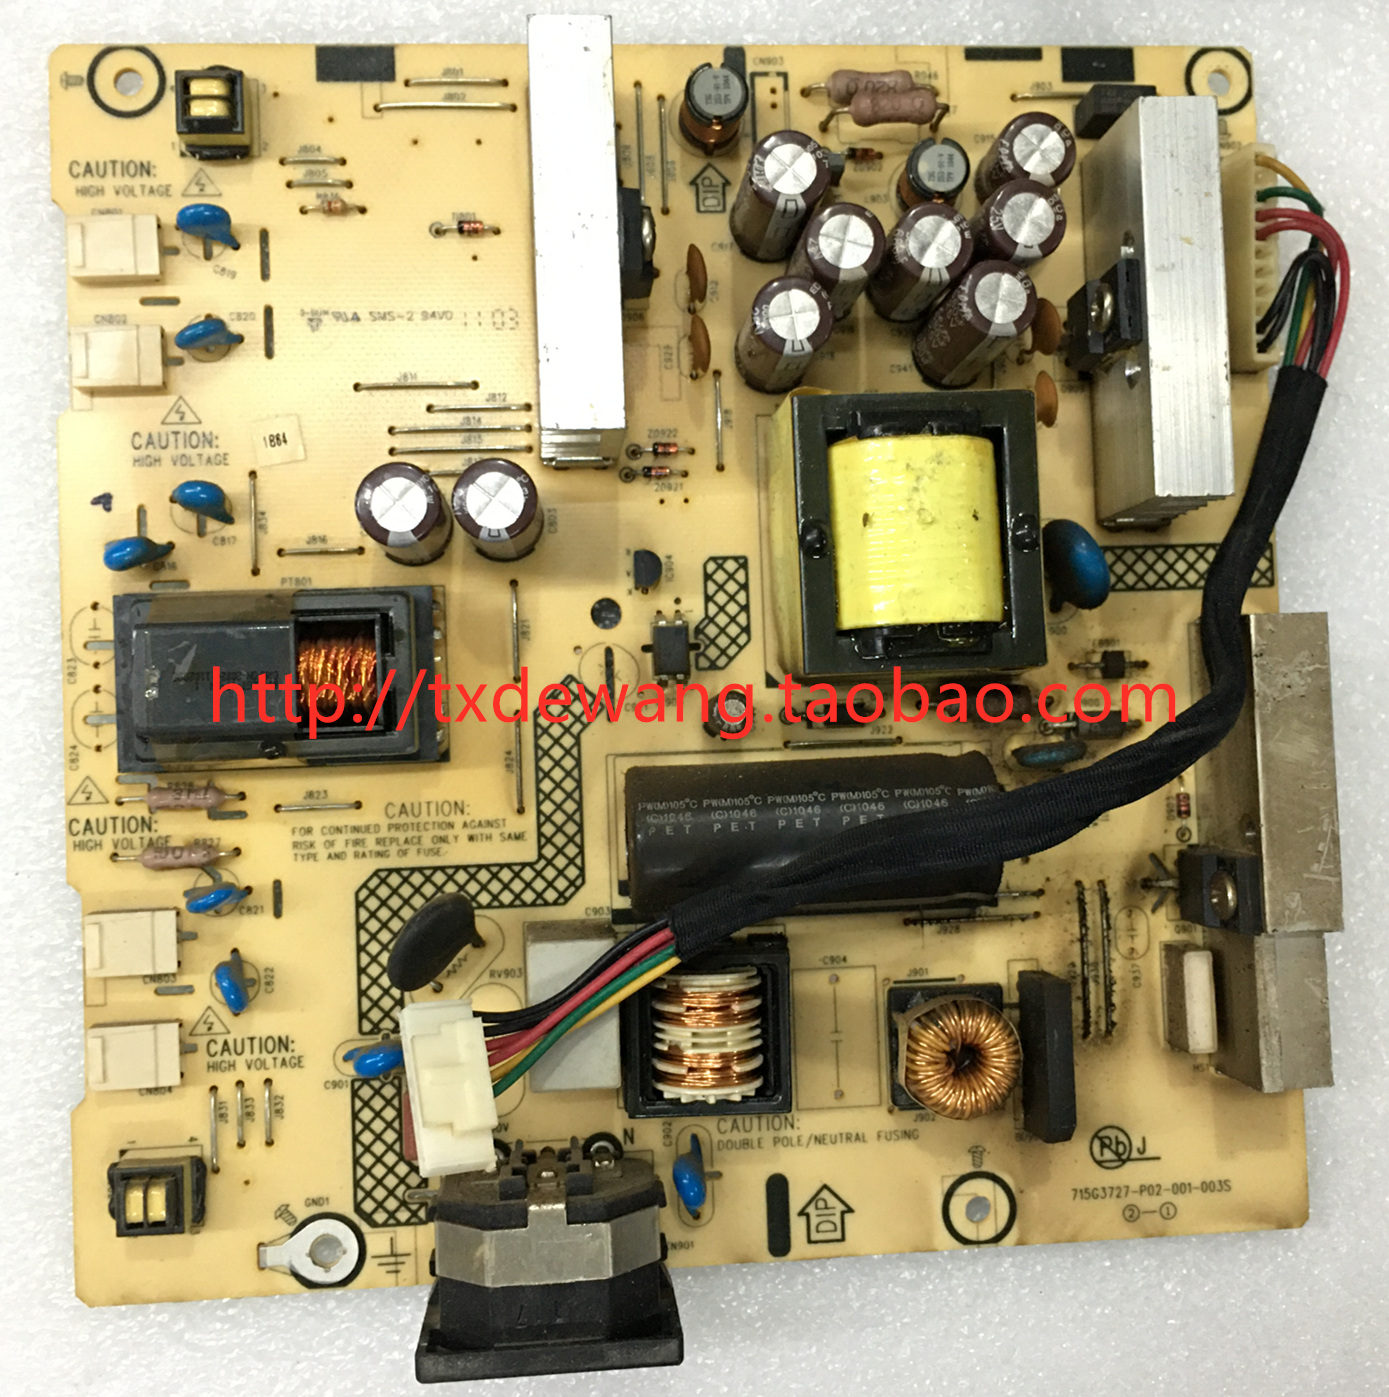 715G3727-P02-001-003S ASUS VE276 VE276N power supply board